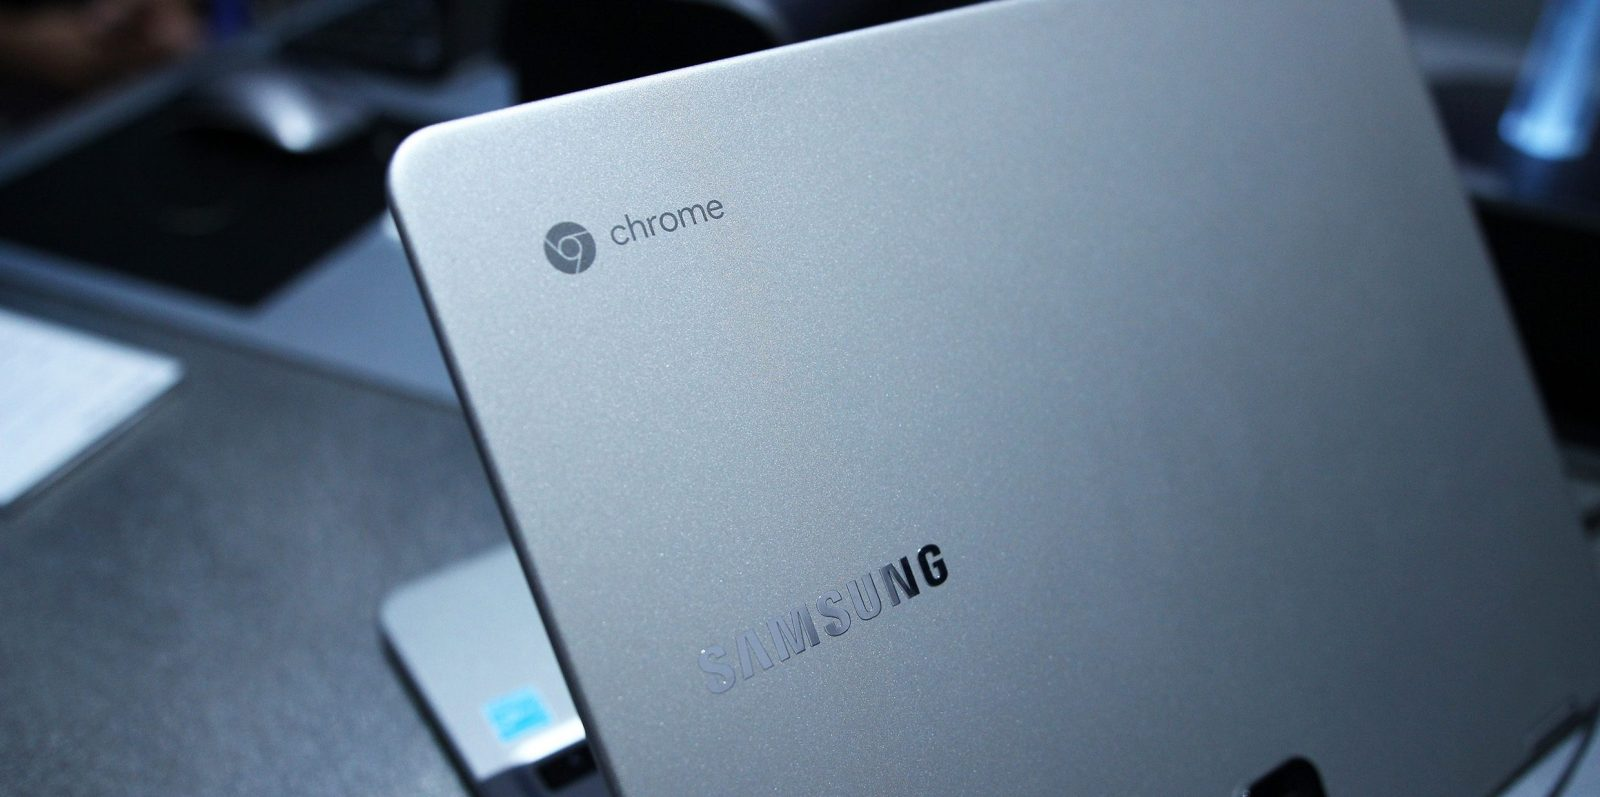 Samsung is reportedly building a Chromebook with a